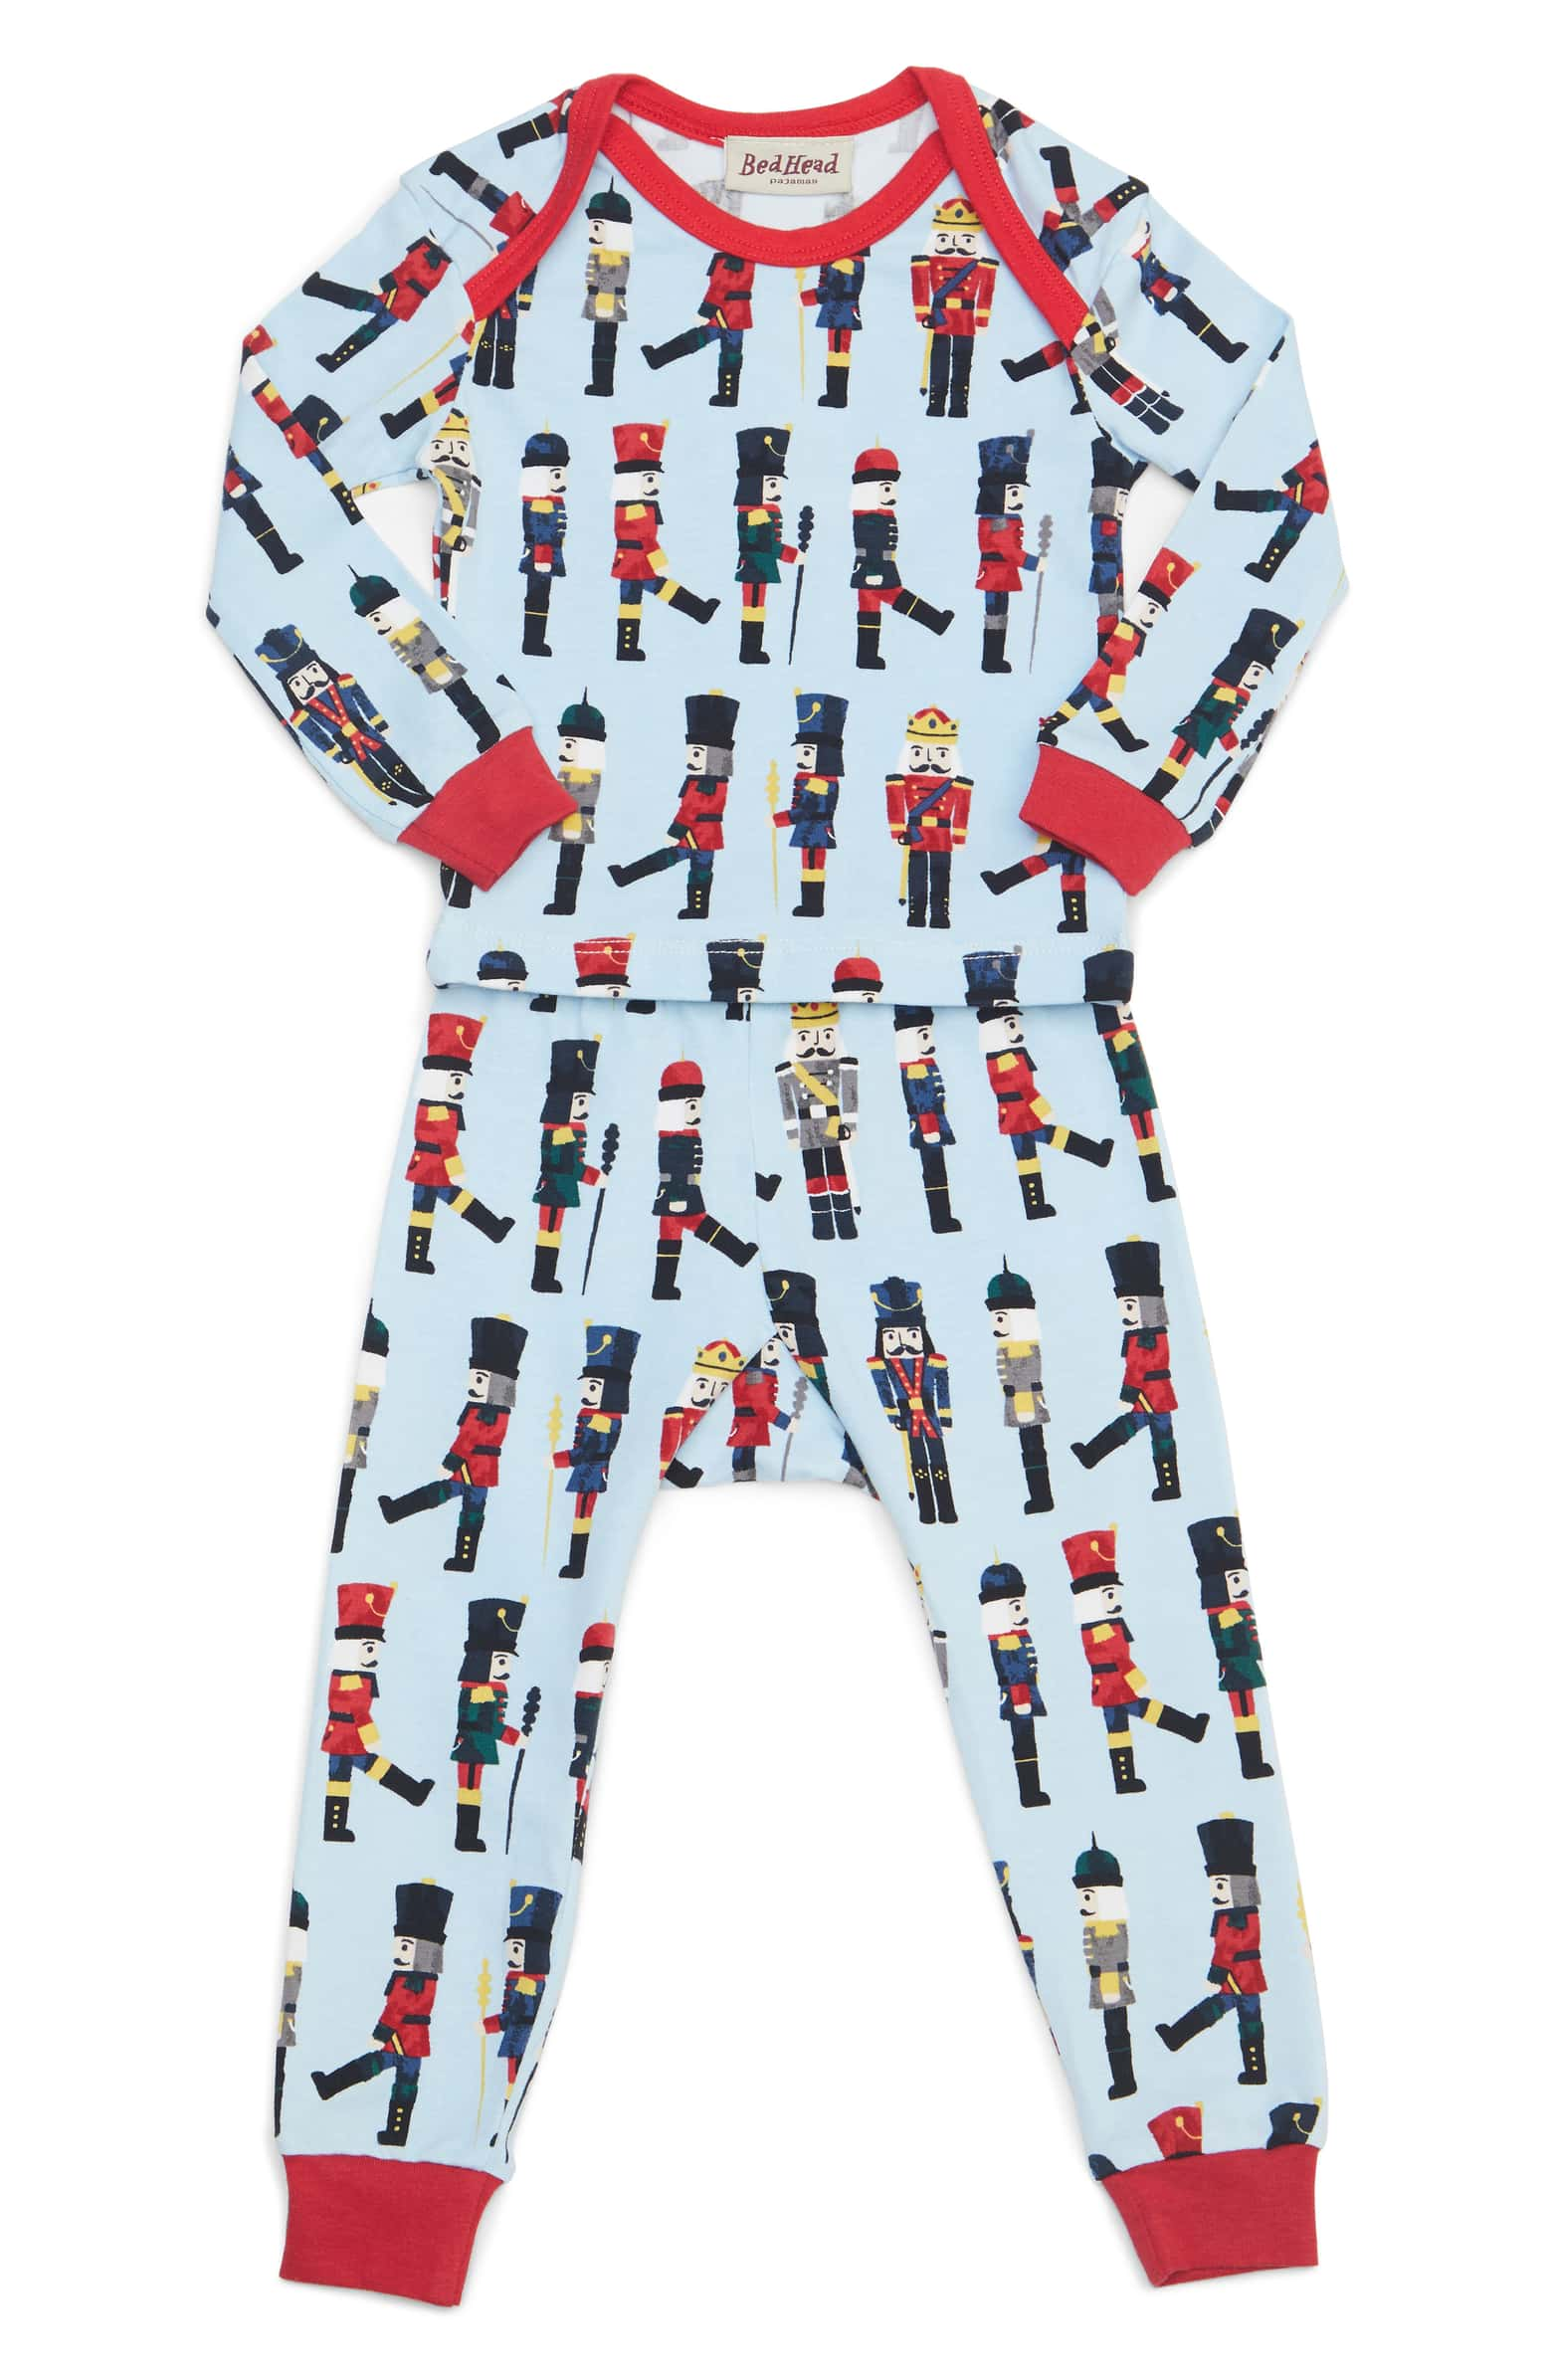 1cc24717f0c4 Holiday Pajamas for the Entire Family - Katie Considers